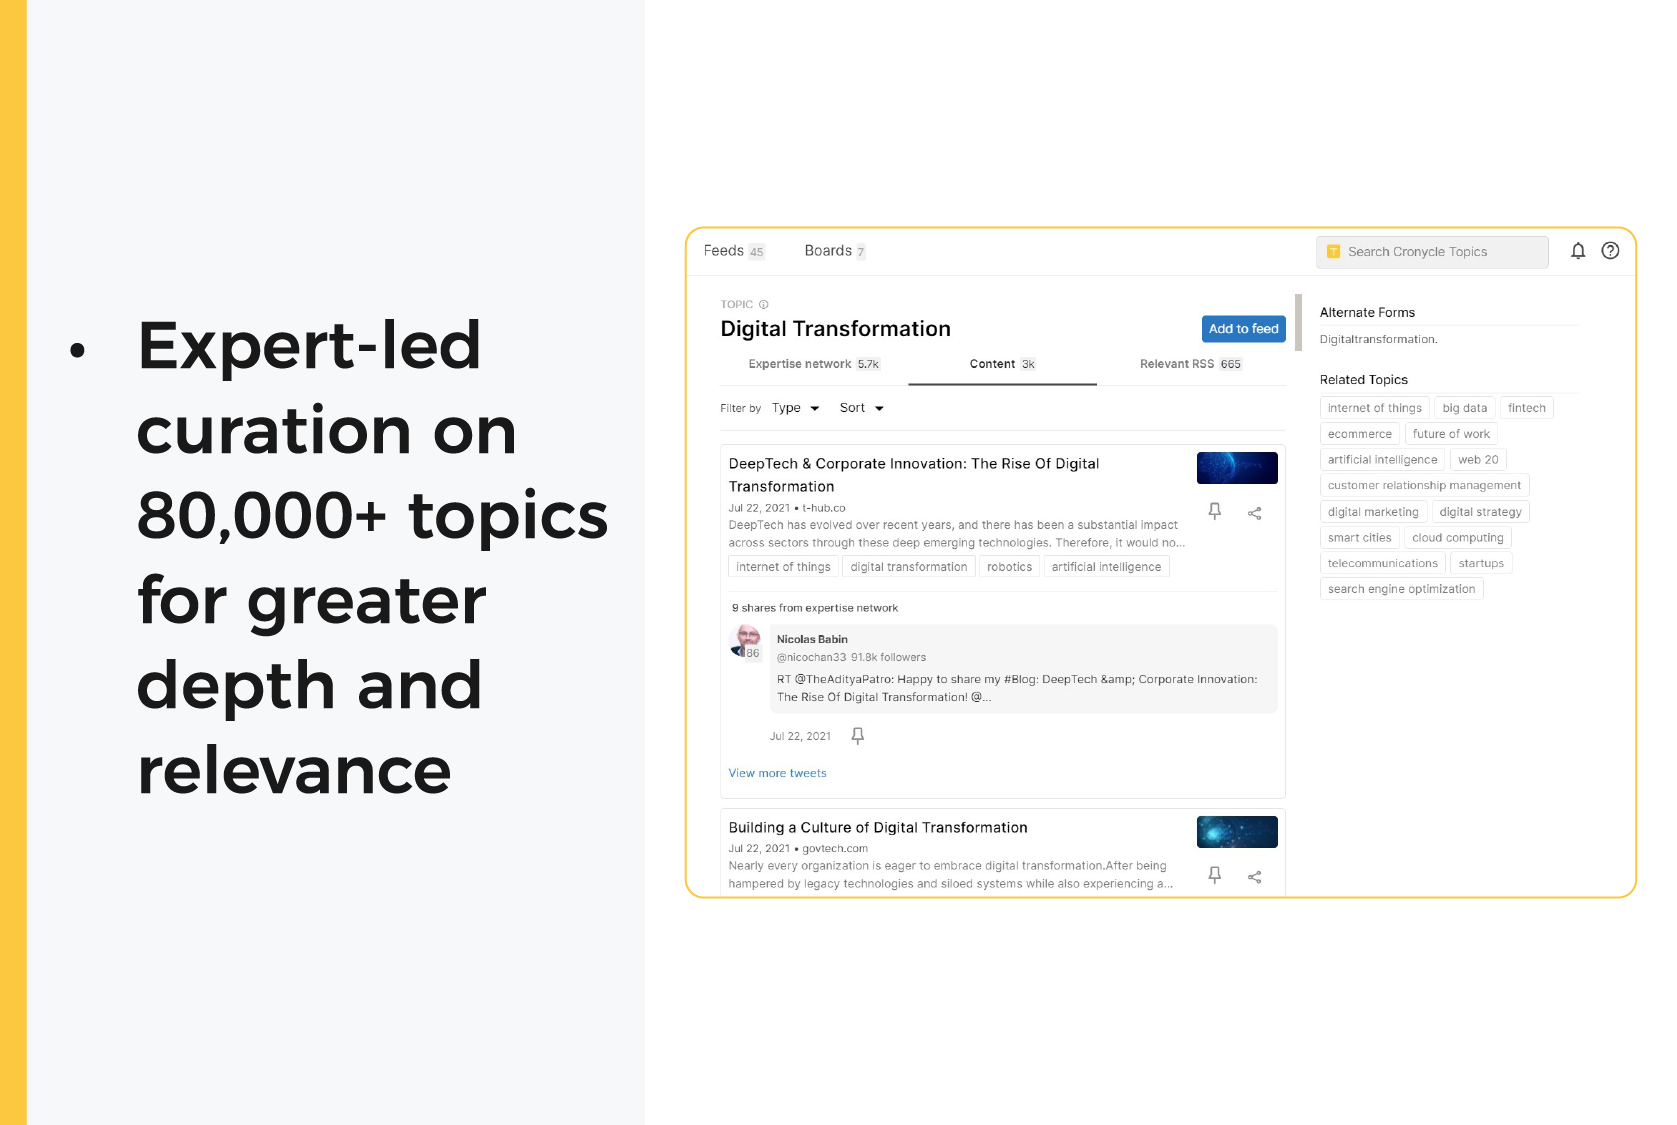 Tap into Cronycle's expert network to surface the most trusted content across 80,000+ topics.